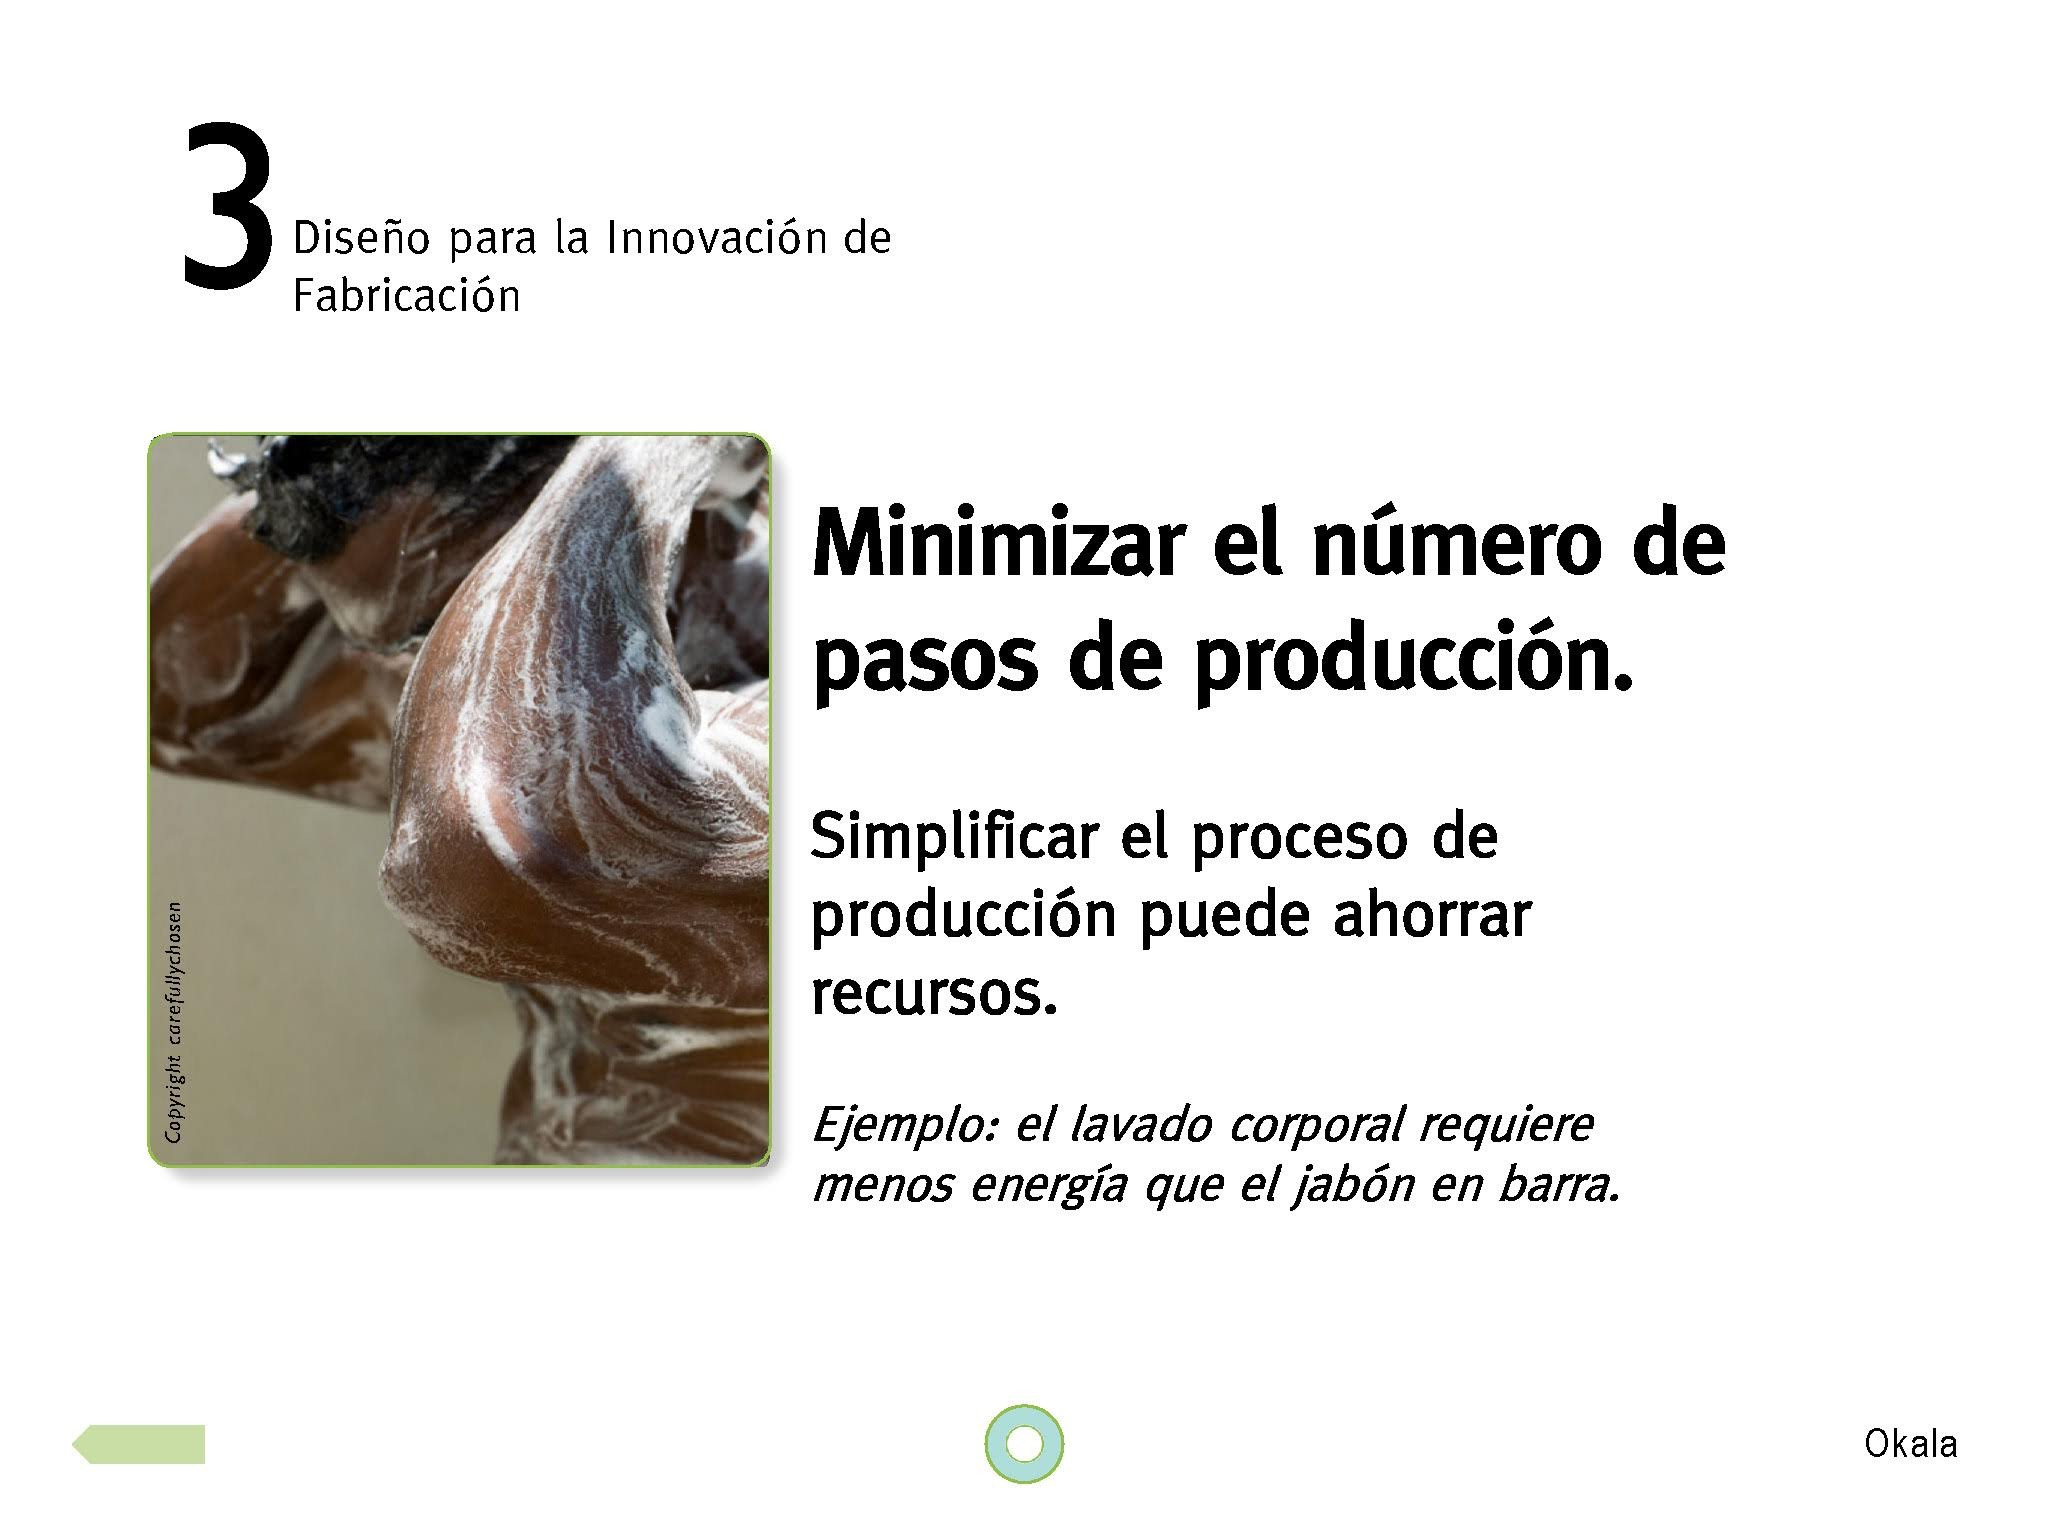 okala-ecodesign-strategy-guide-2012-spanish.new_page_20-1